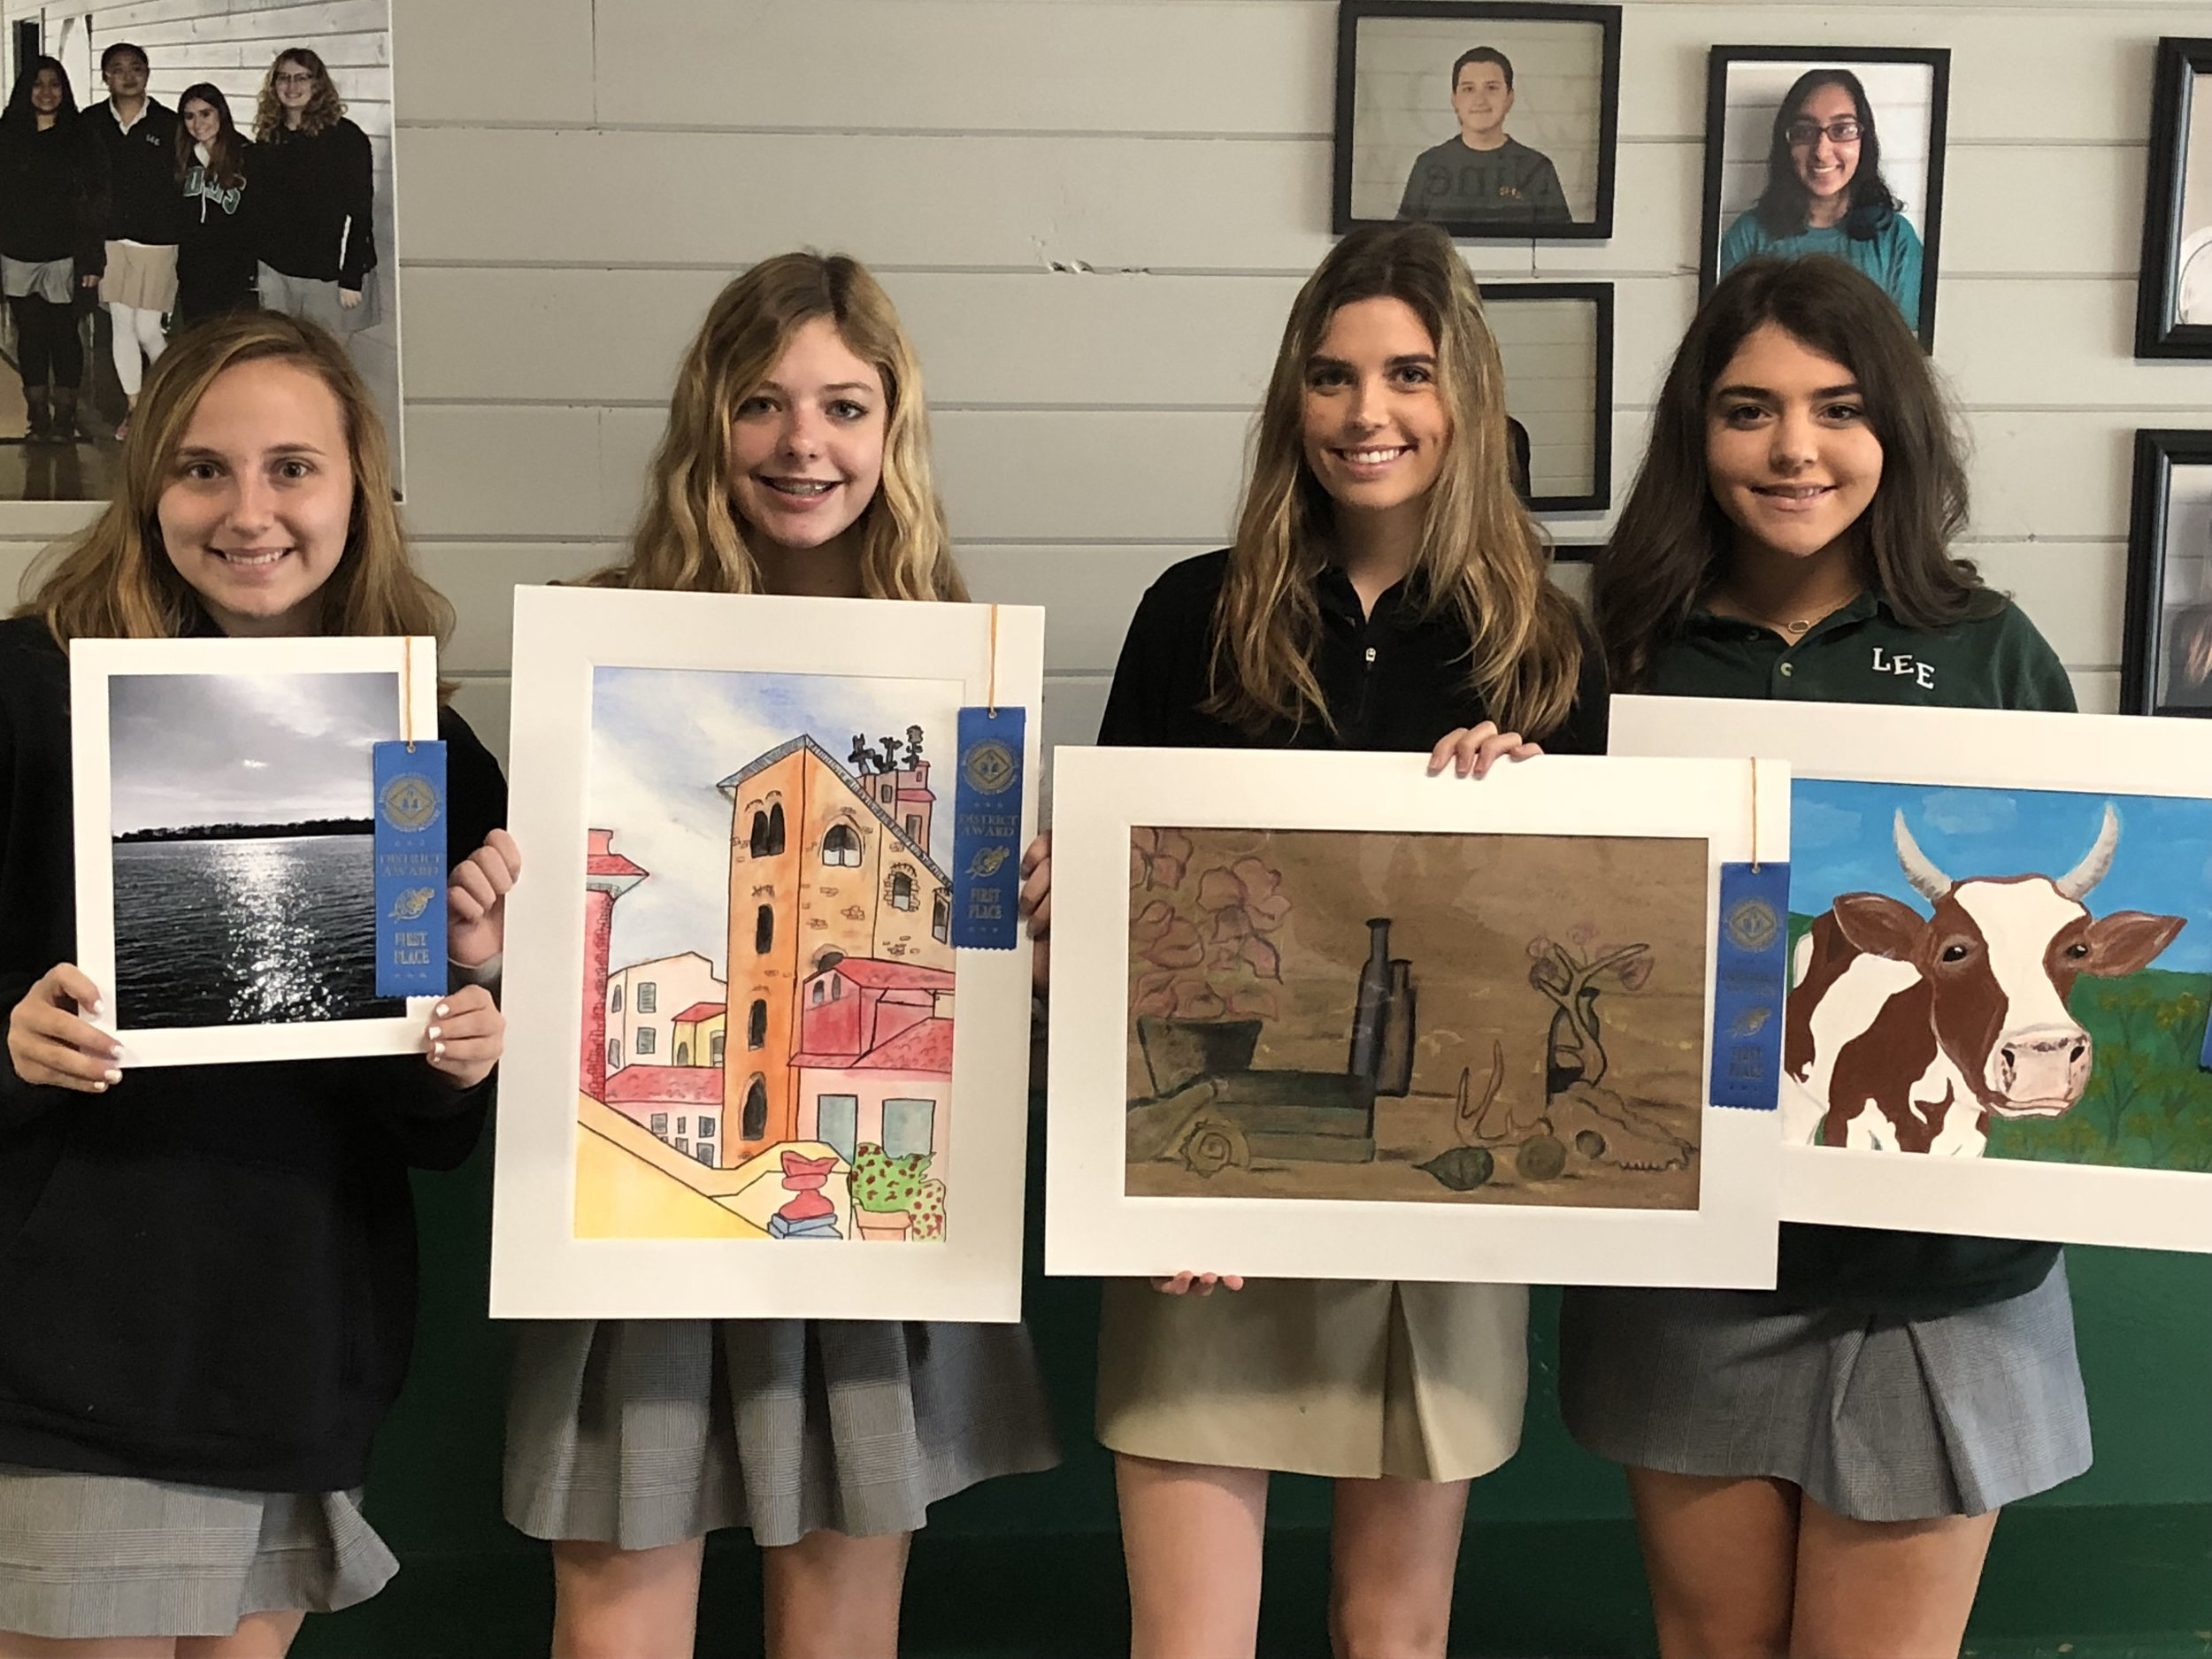 L to R: Callie Millwood, 11th grade - 1st Place Photography; Allie Middleton, 10th grade - 1st Place Mixed Media; Emily Garrard, 11th grade - 1st Place Single Drawing;  & Ashton West, 10th grade - 1st Place Painting